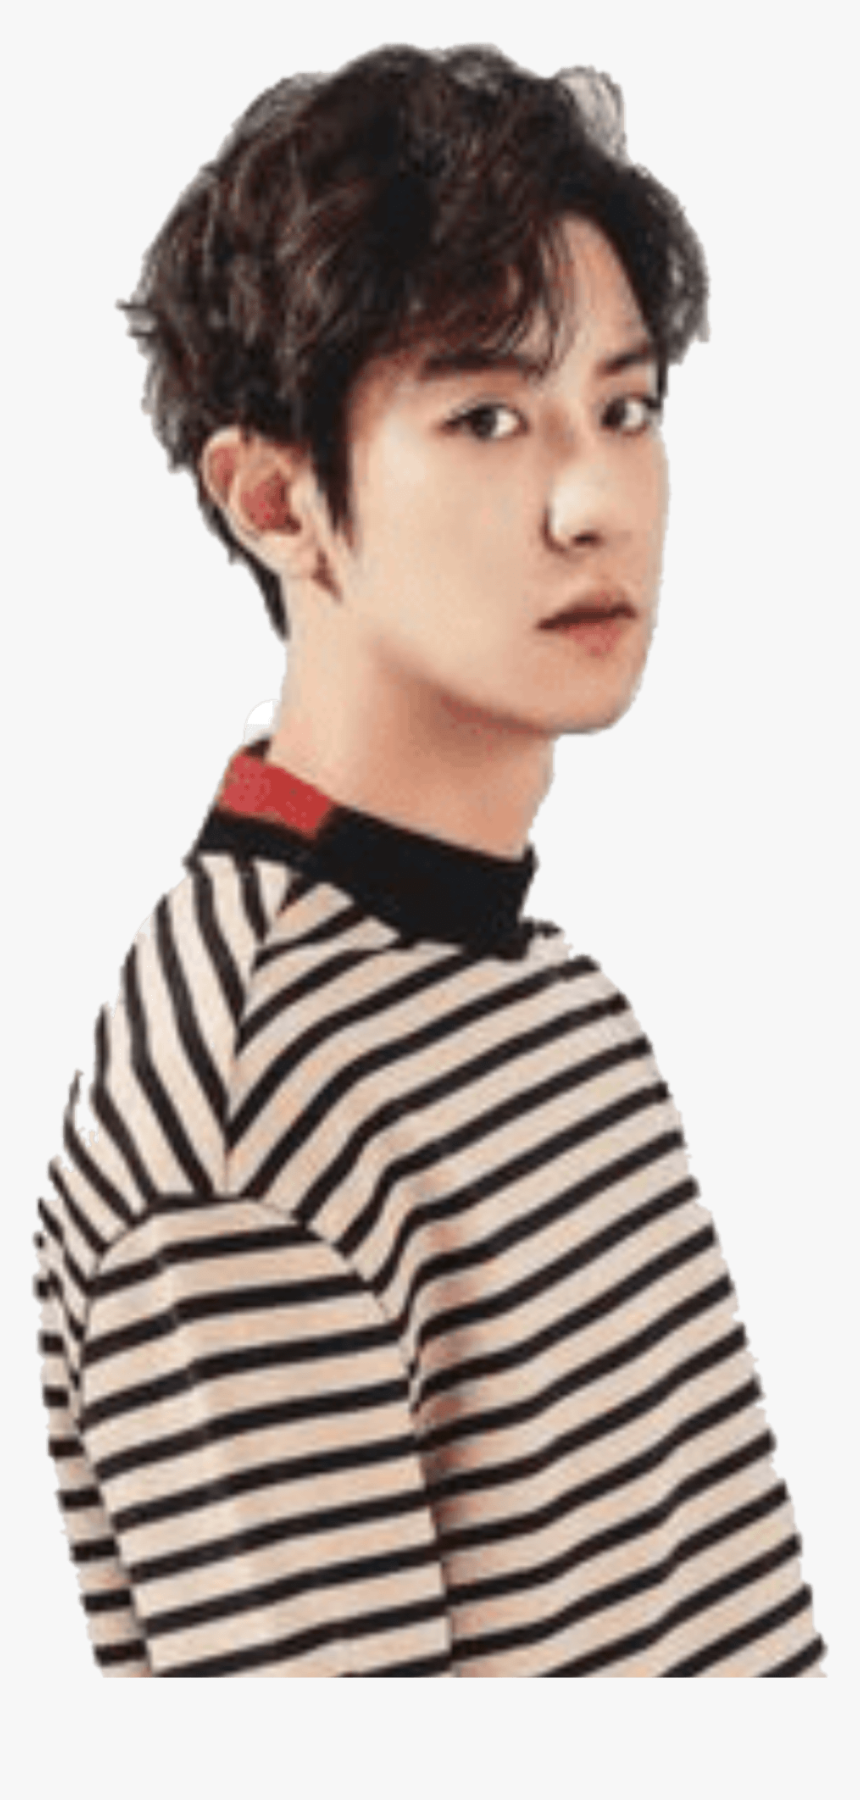 Exo Chanyeol Parkchanyeol Sticker Chan Yeol Stay With Me Hd Png Download Transparent Png Image Pngitem